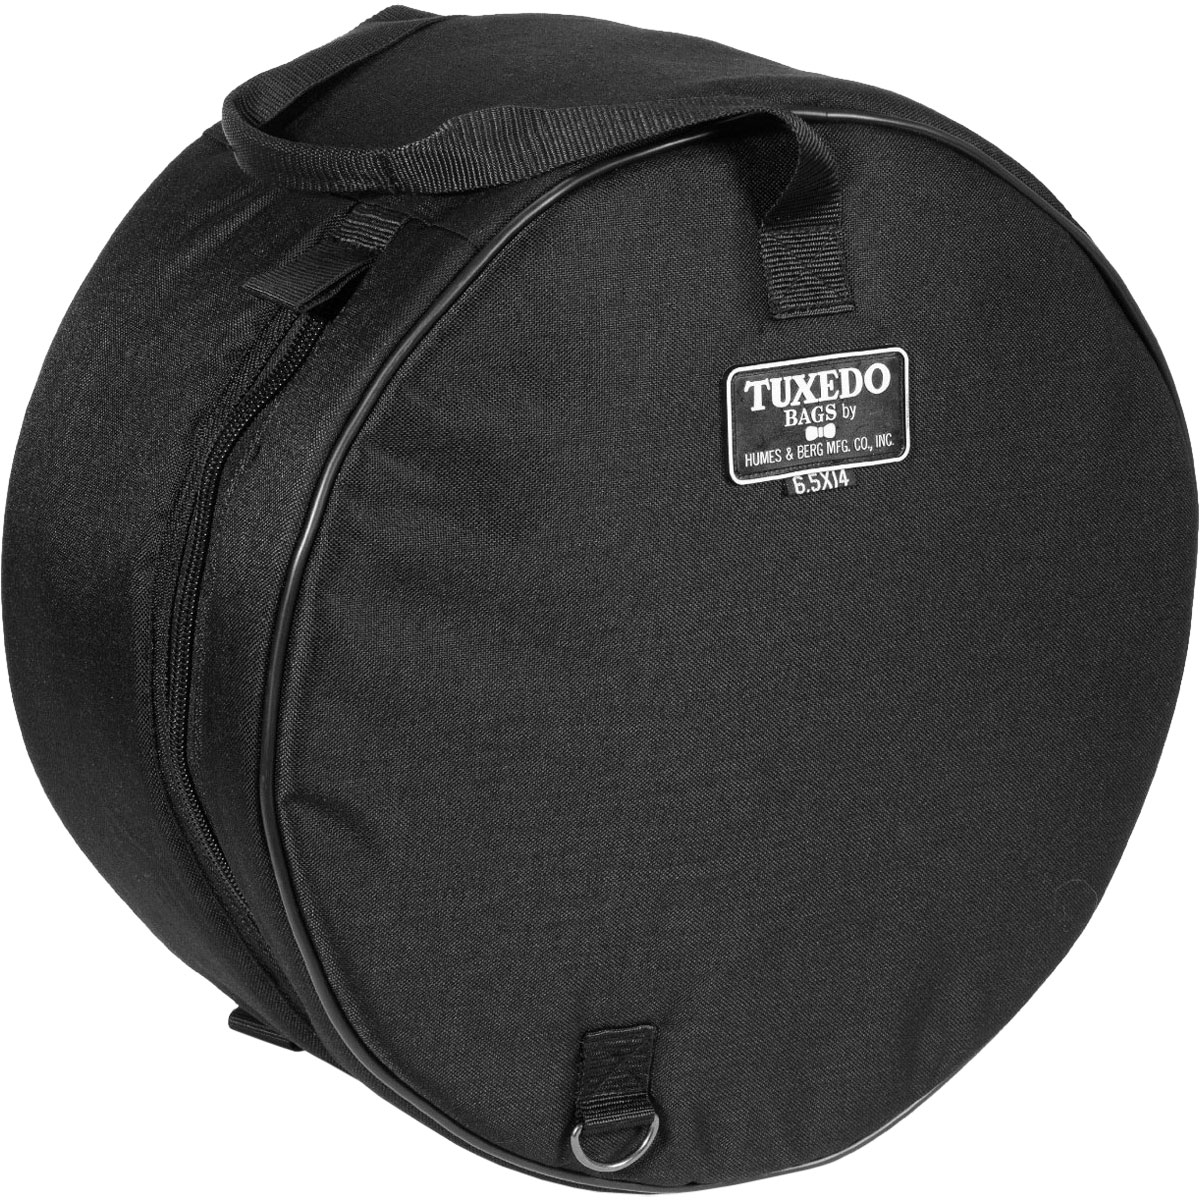 "Humes & Berg 4"" (Deep) x 14"" (Diameter) Tuxedo Snare Bag/Soft Case"